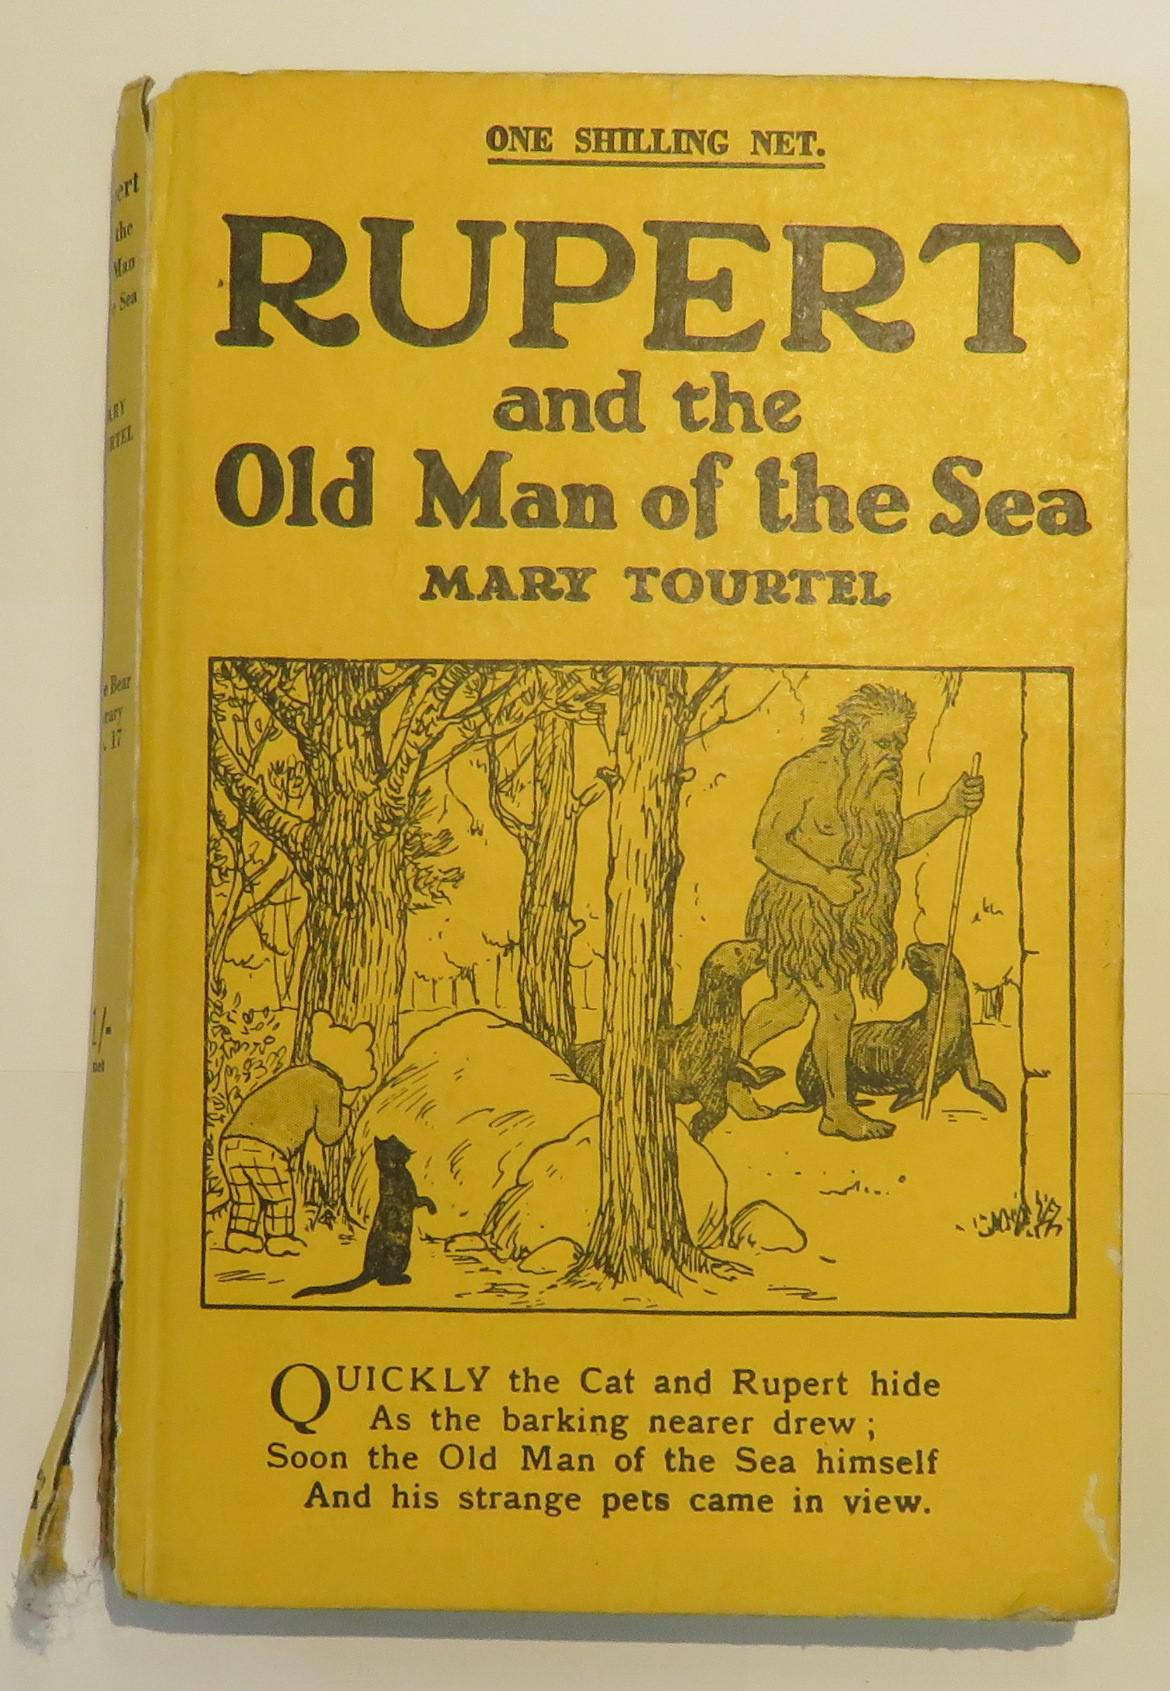 Rupert and the Old Man of the Sea